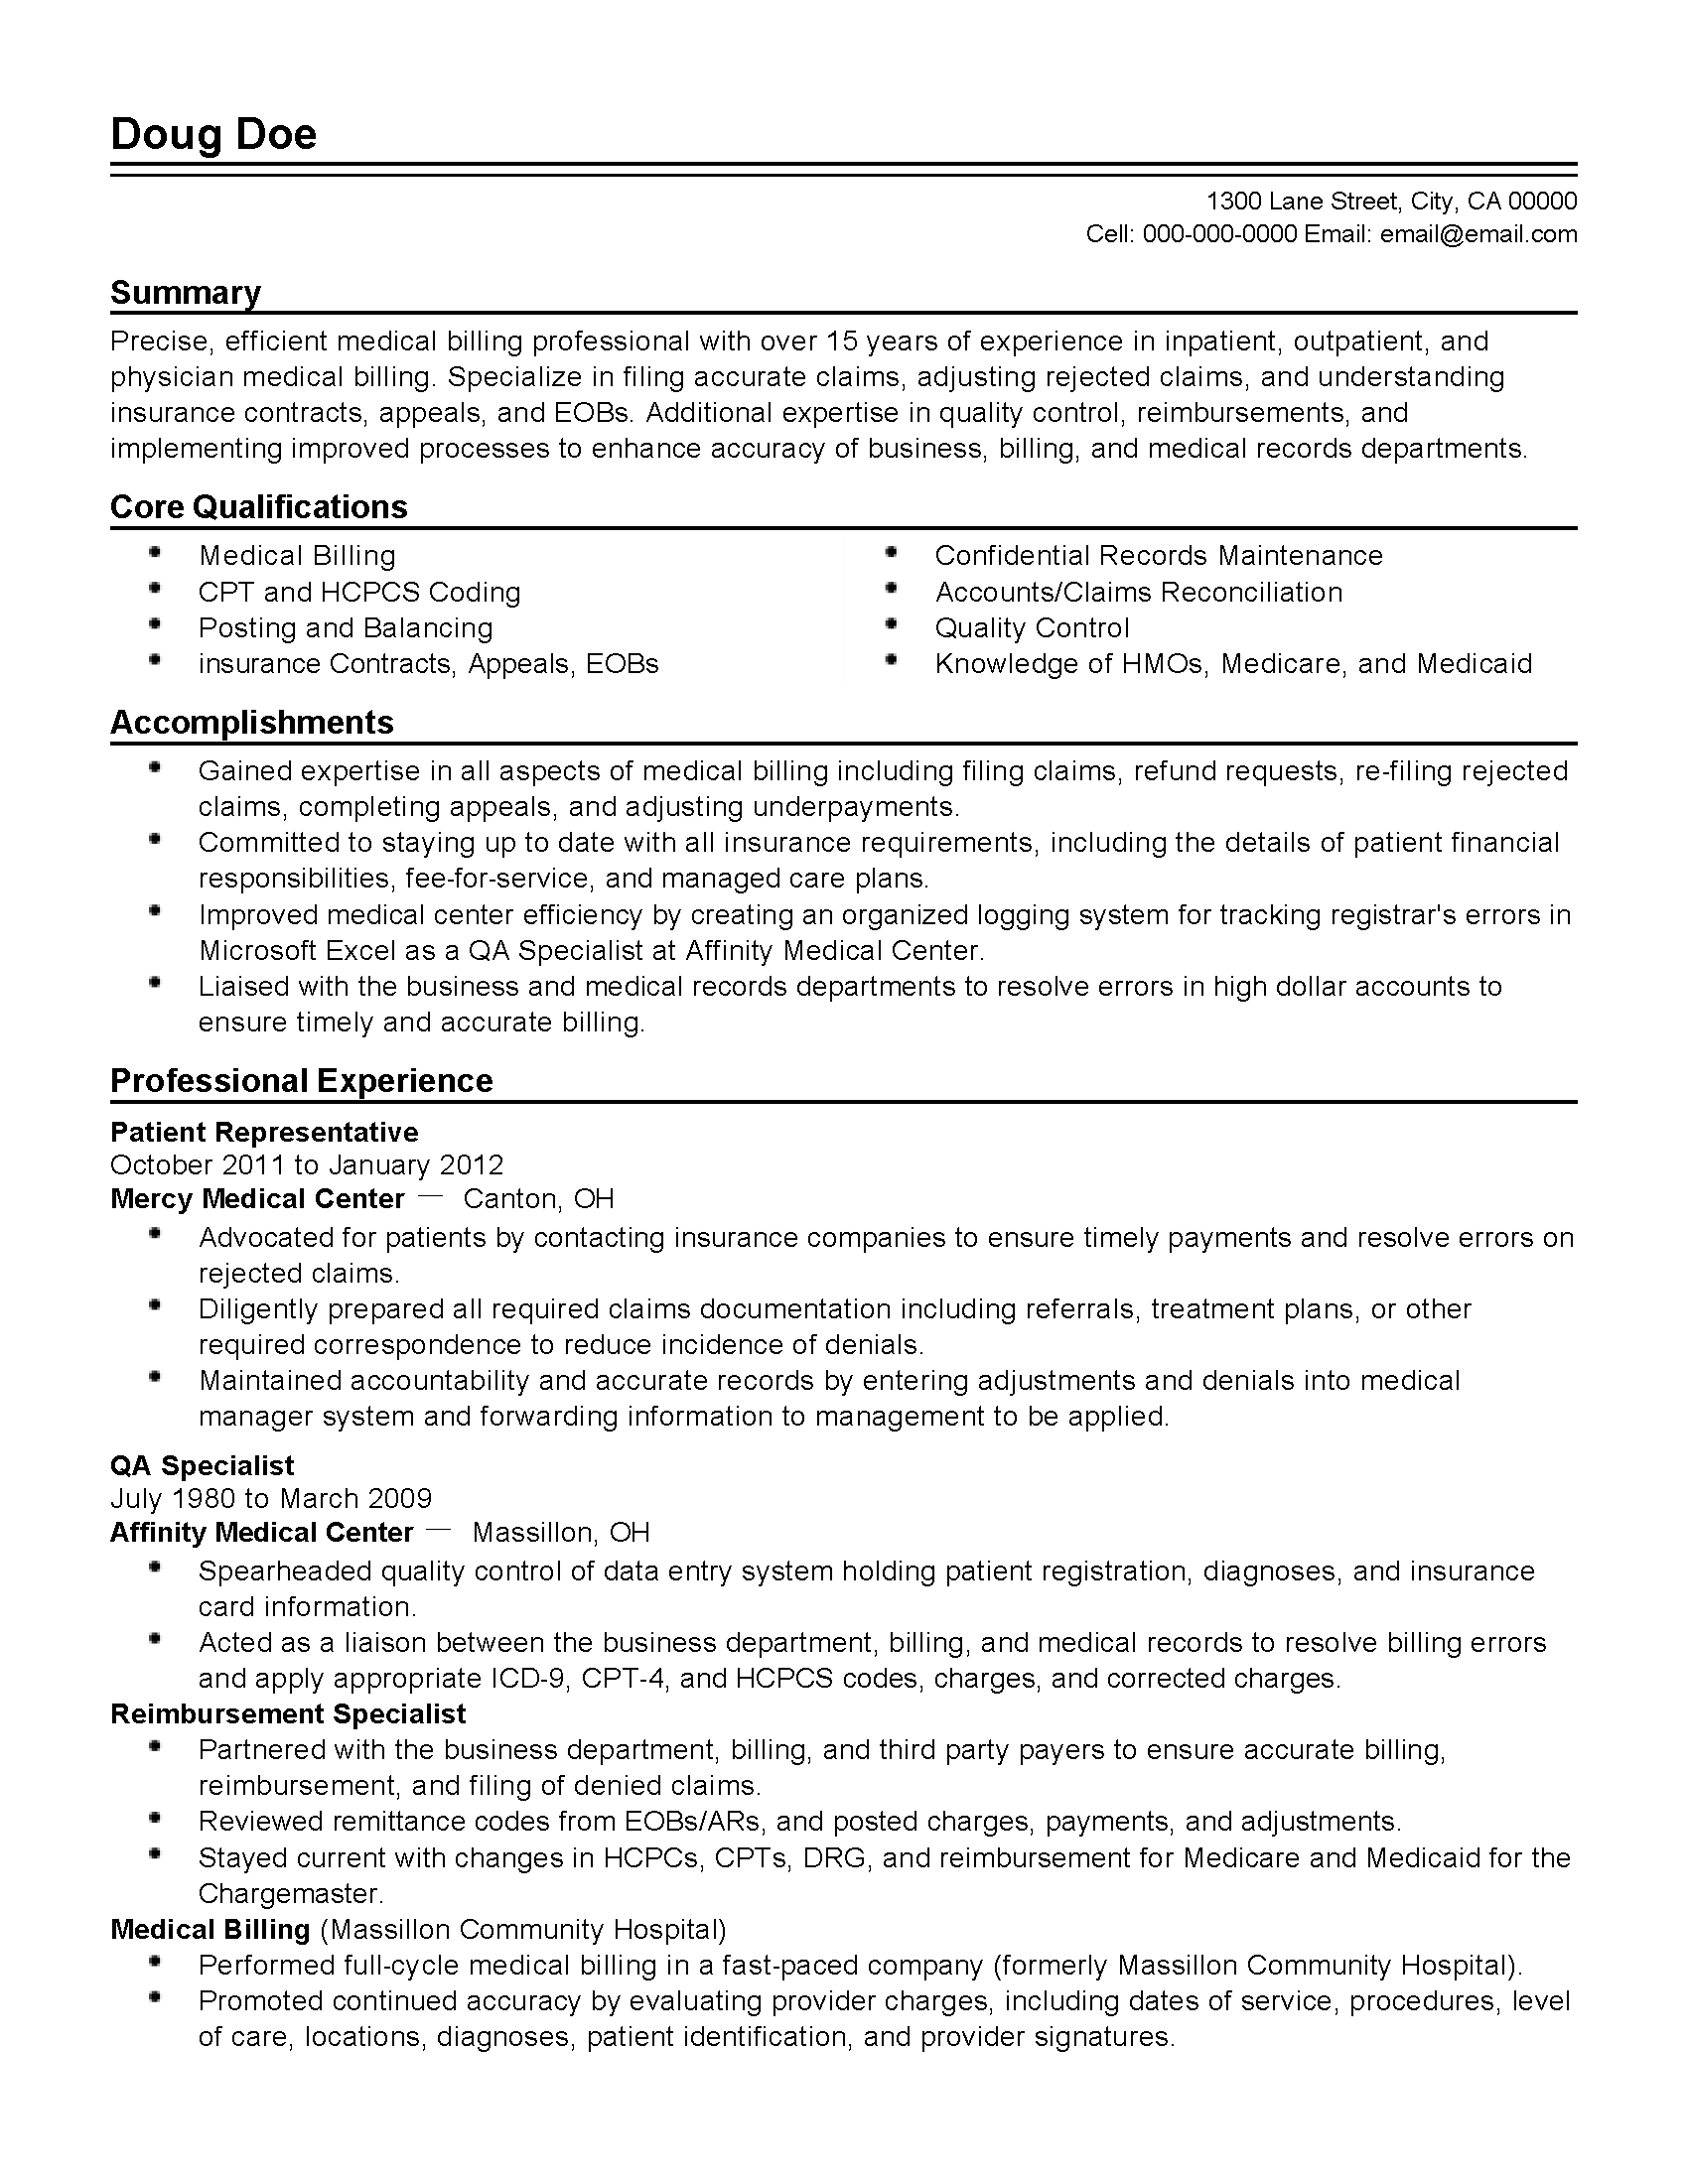 Professional Medical Billing Professional Templates to Showcase – Medical Billing Resumes